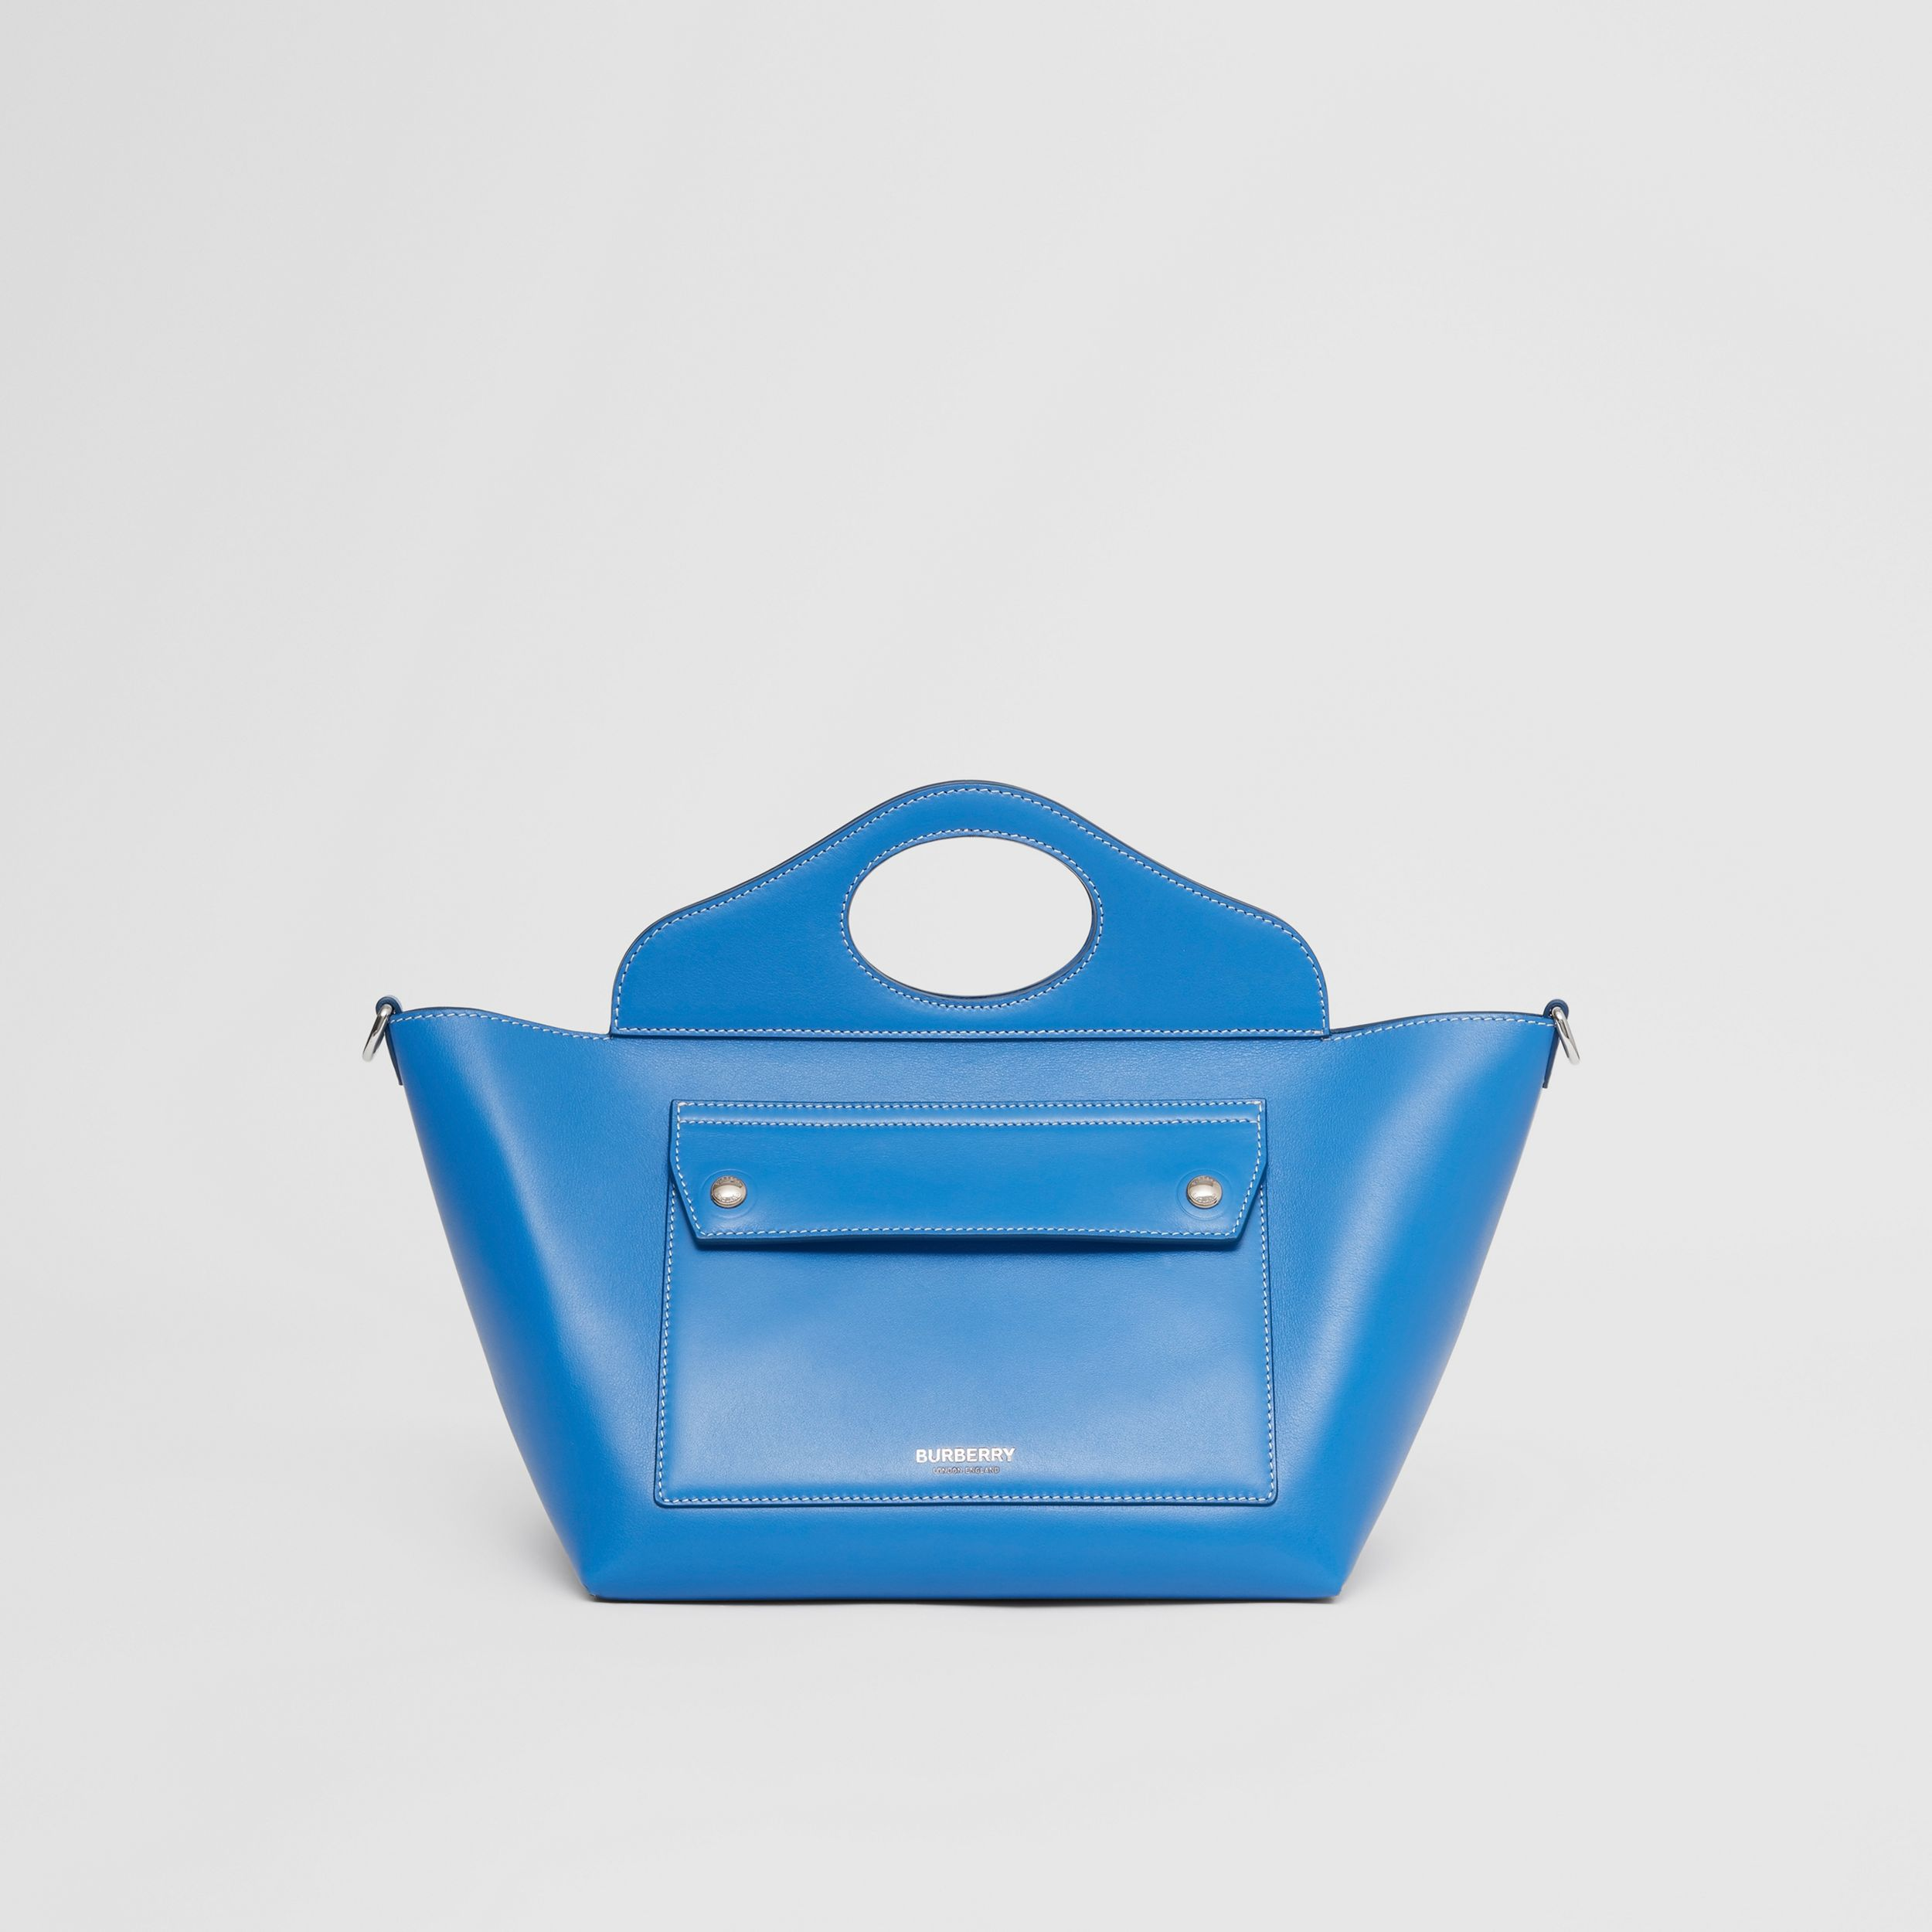 Mini Leather Soft Pocket Tote in Warm Royal Blue - Women | Burberry Australia - 1